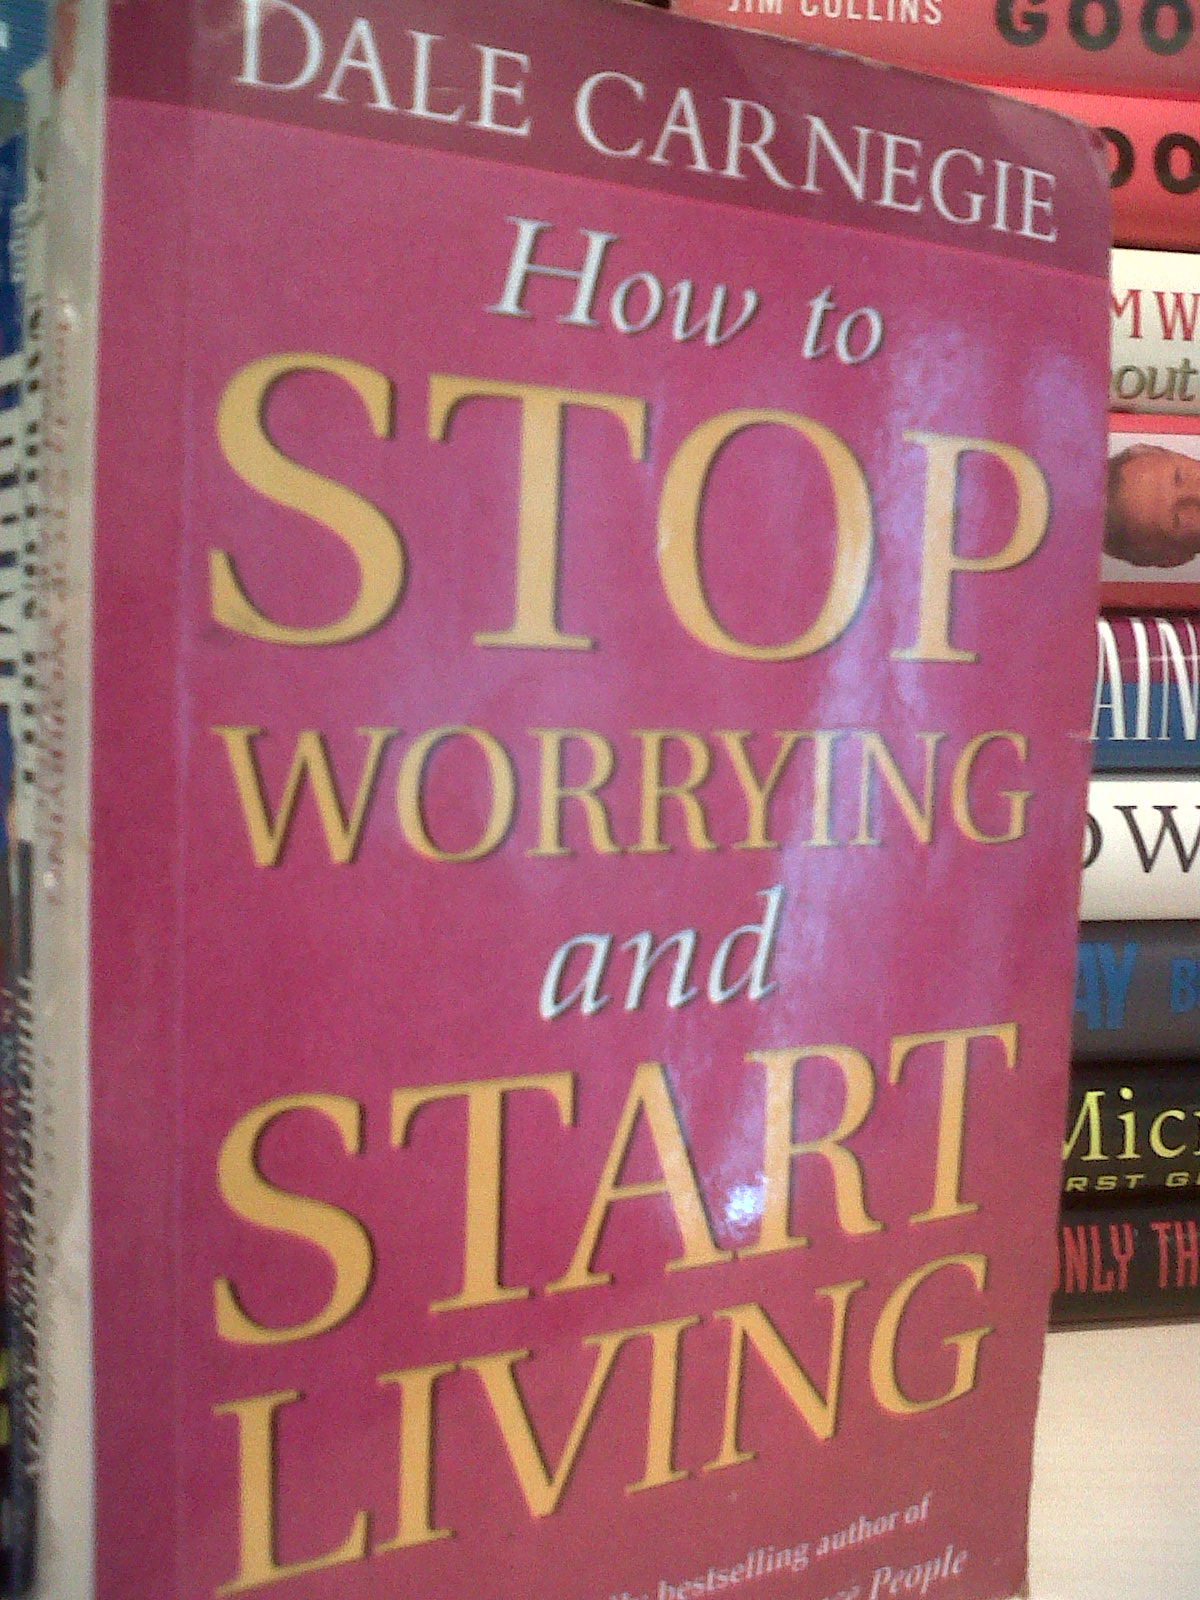 How to Stop Worrying and Start Living Dale Carnegie